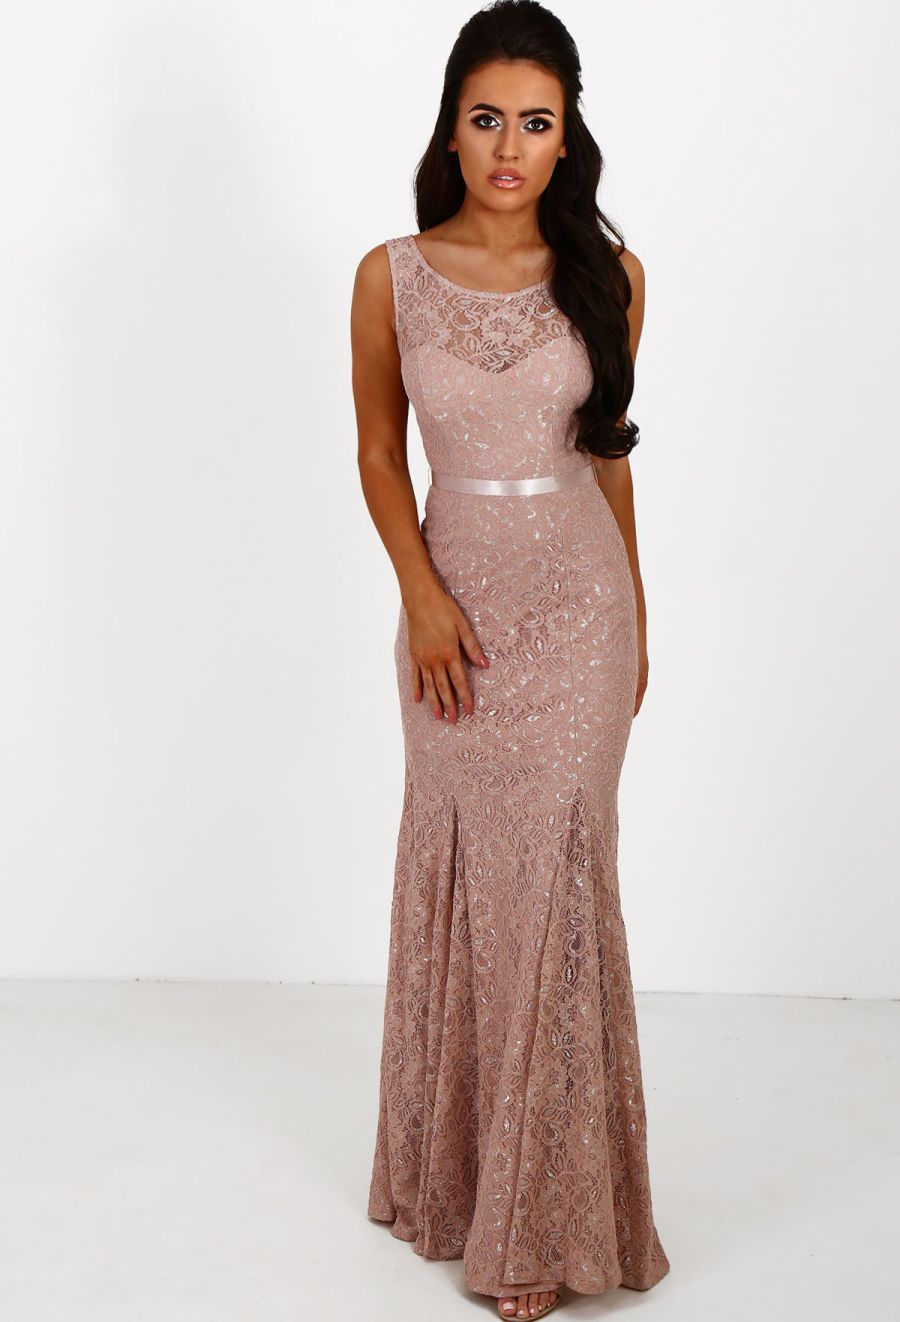 52f8407ceb17 Ever After Pink Metallic Lace Backless Fishtail Maxi Dress - 8 ...